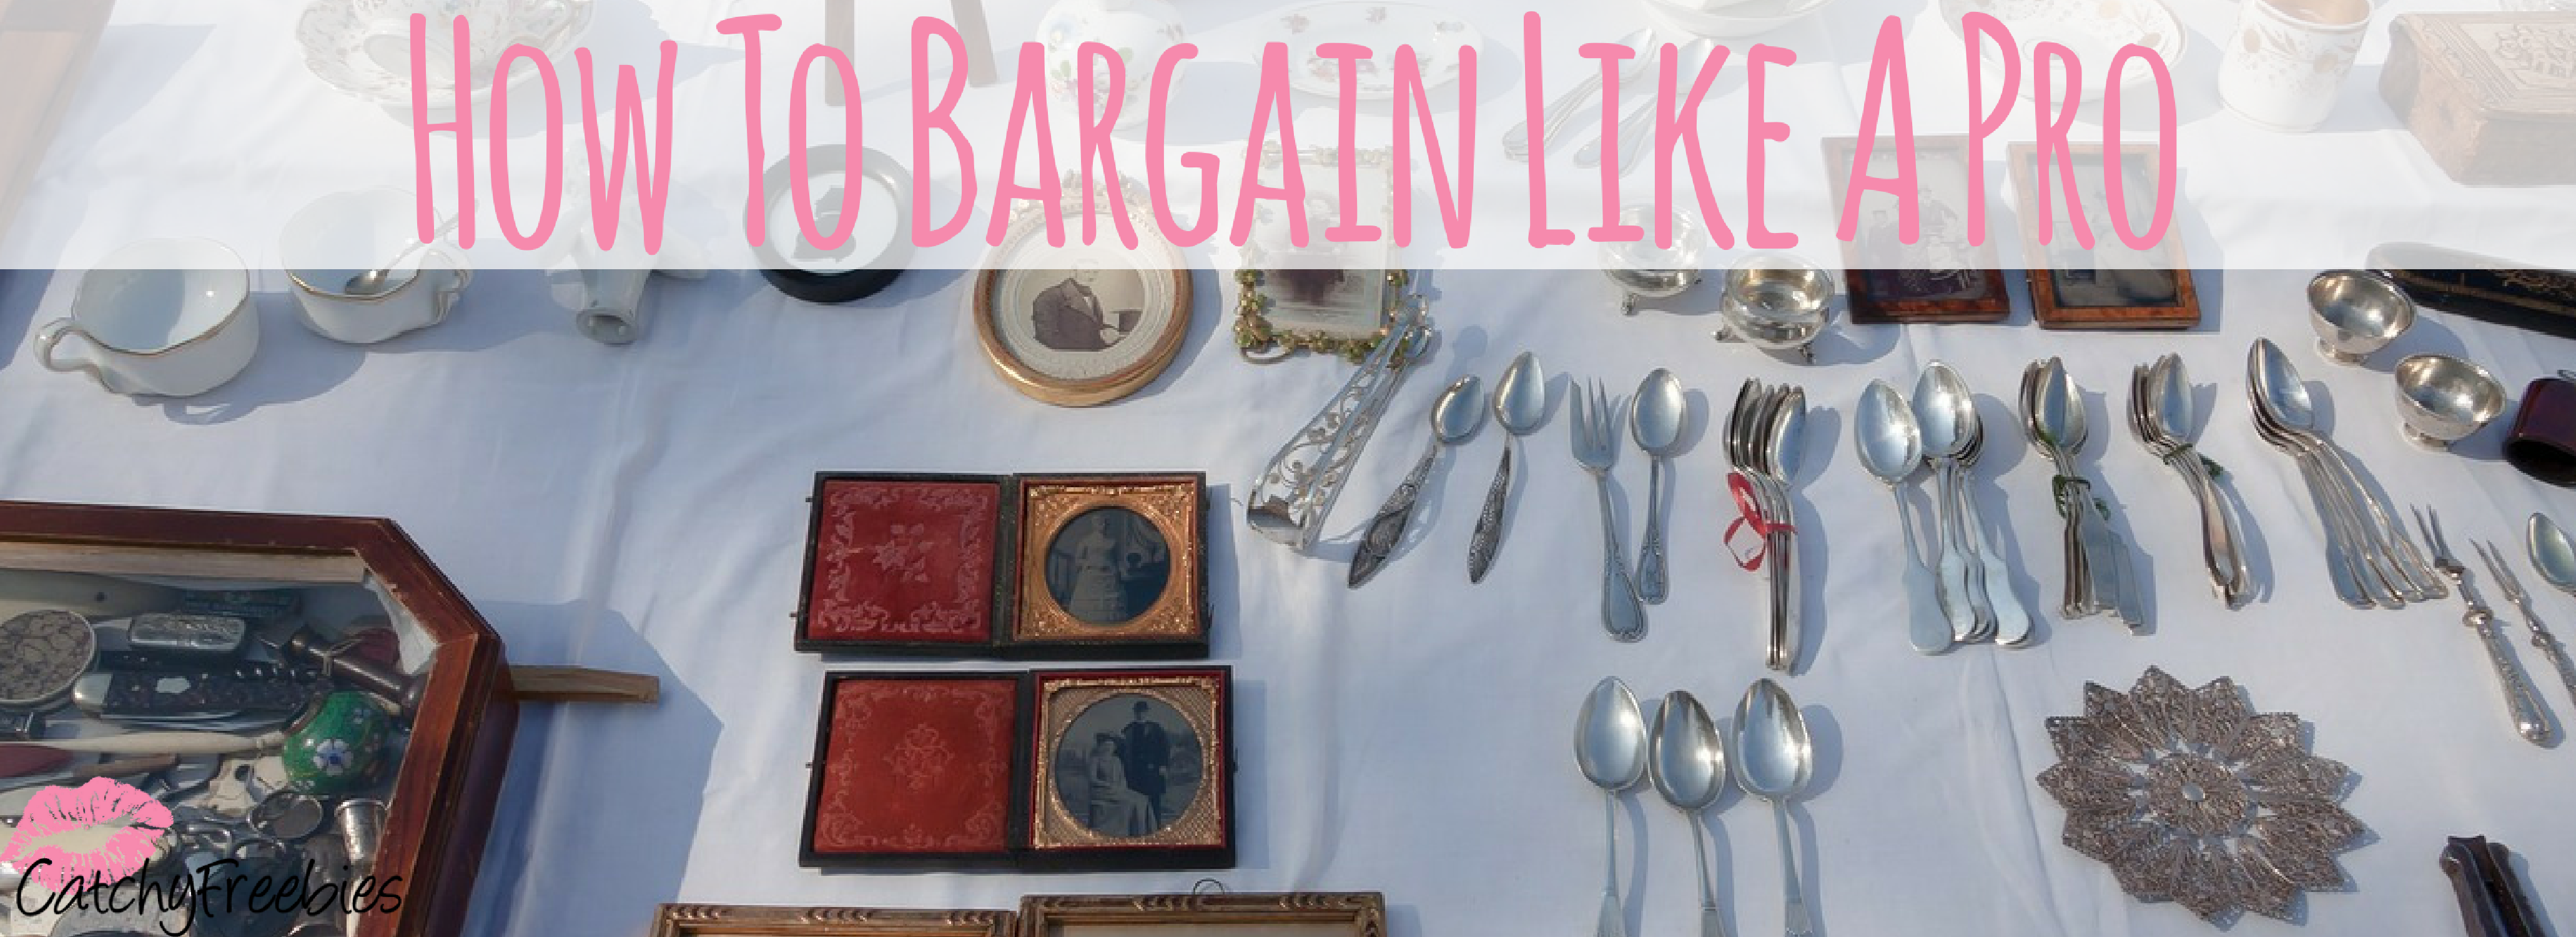 Learn How To Bargain Like A Pro